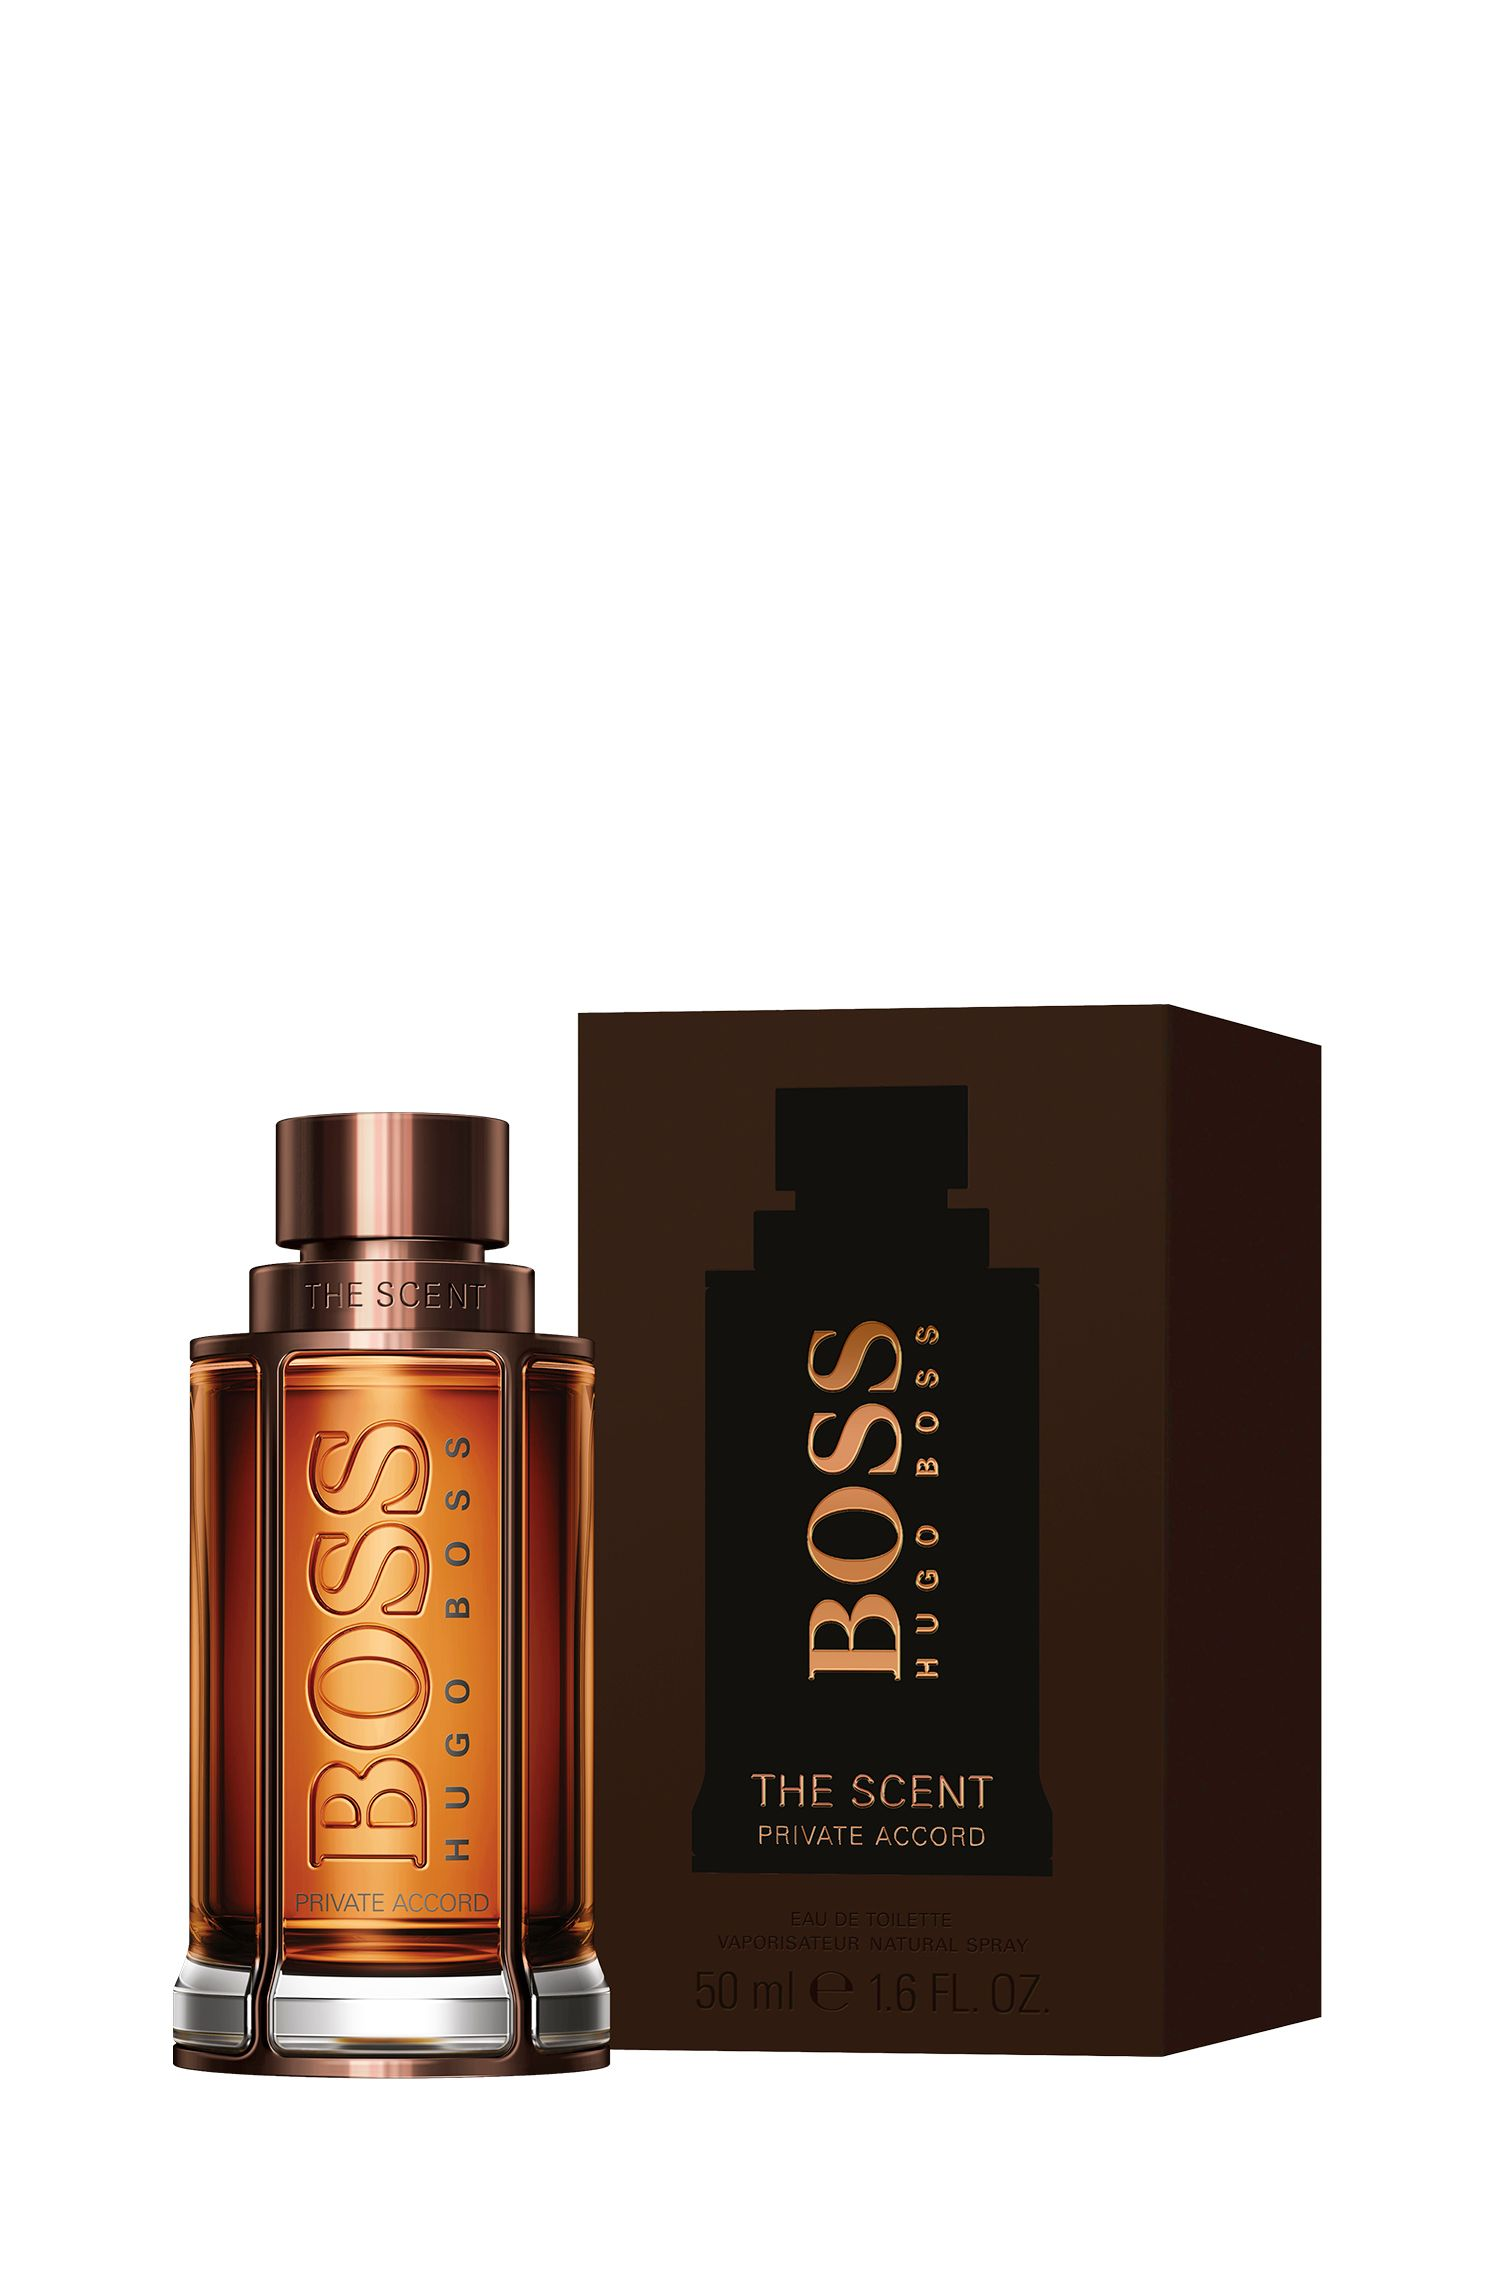 BOSS The Scent Private Accord for Him Eau de Toilette, 50 ml, Assorted-Pre-Pack